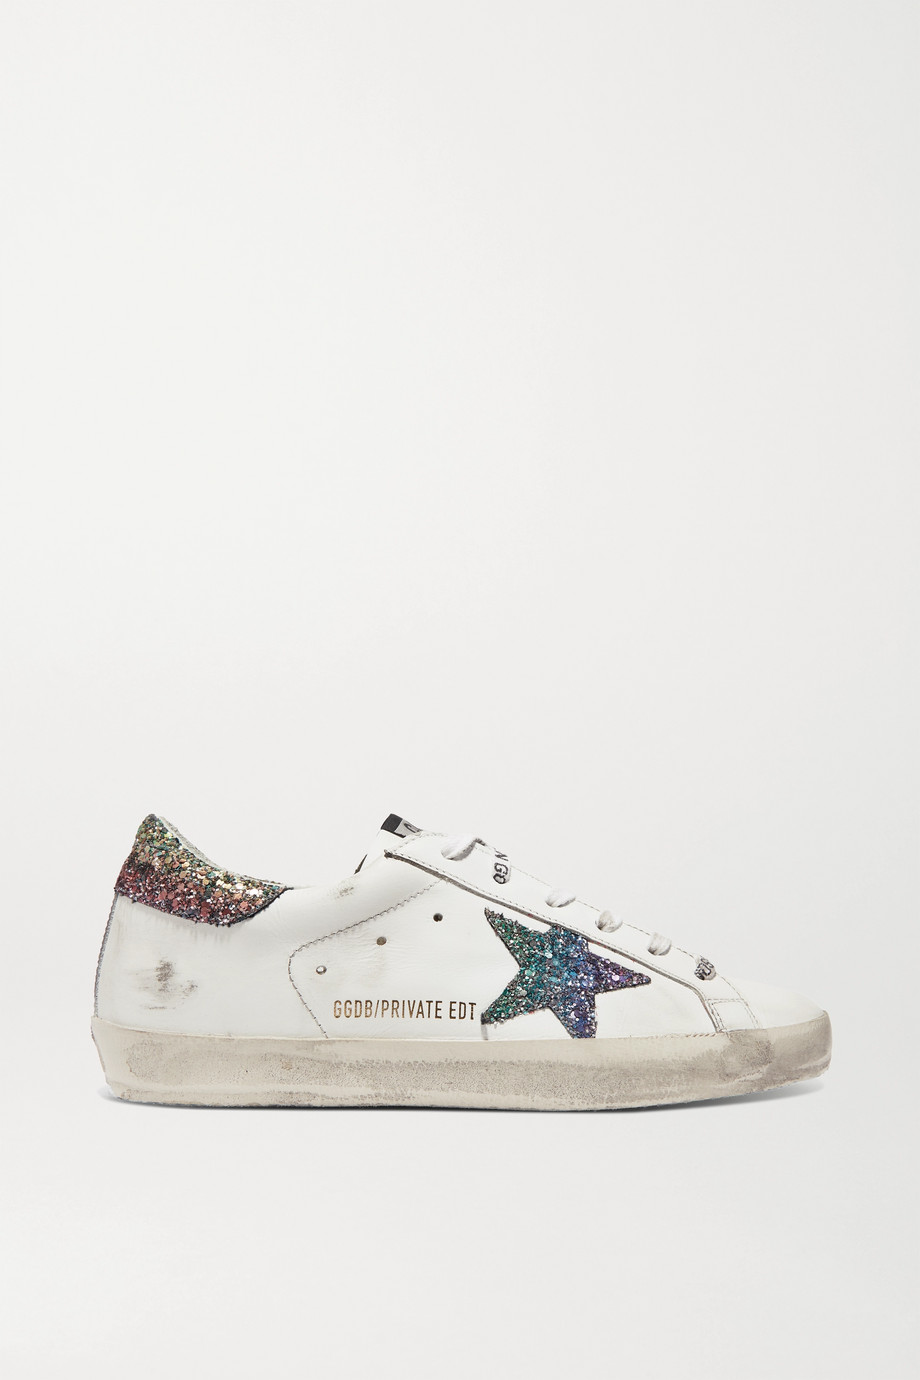 GOLDEN GOOSE Superstar glittered distressed leather sneakers